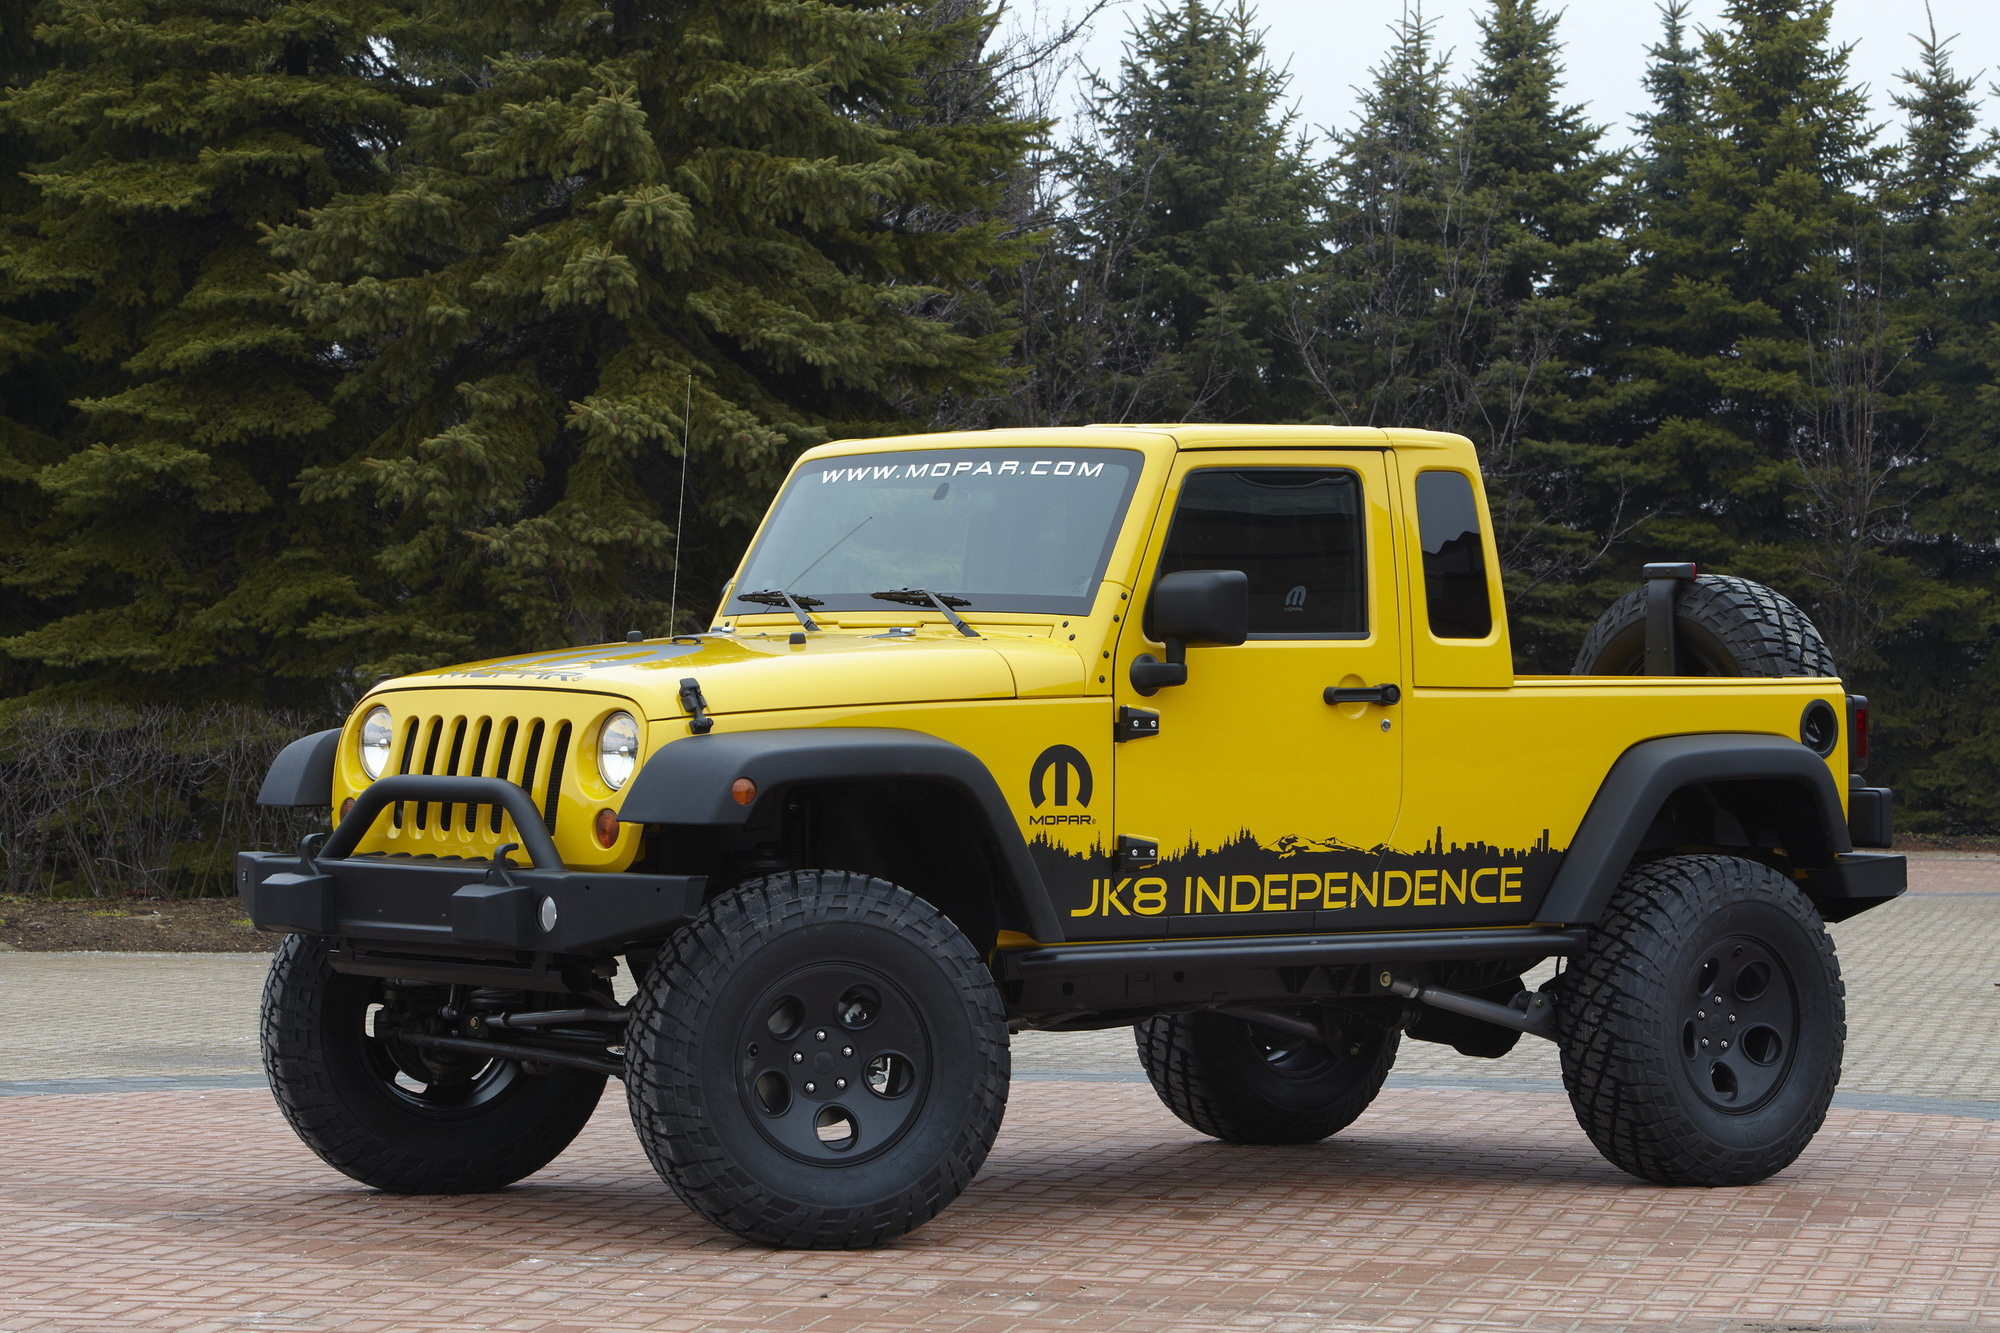 Jeep Wrangler Jk8 >> 2011 Jeep Wrangler Jk 8 Independence Review Top Speed